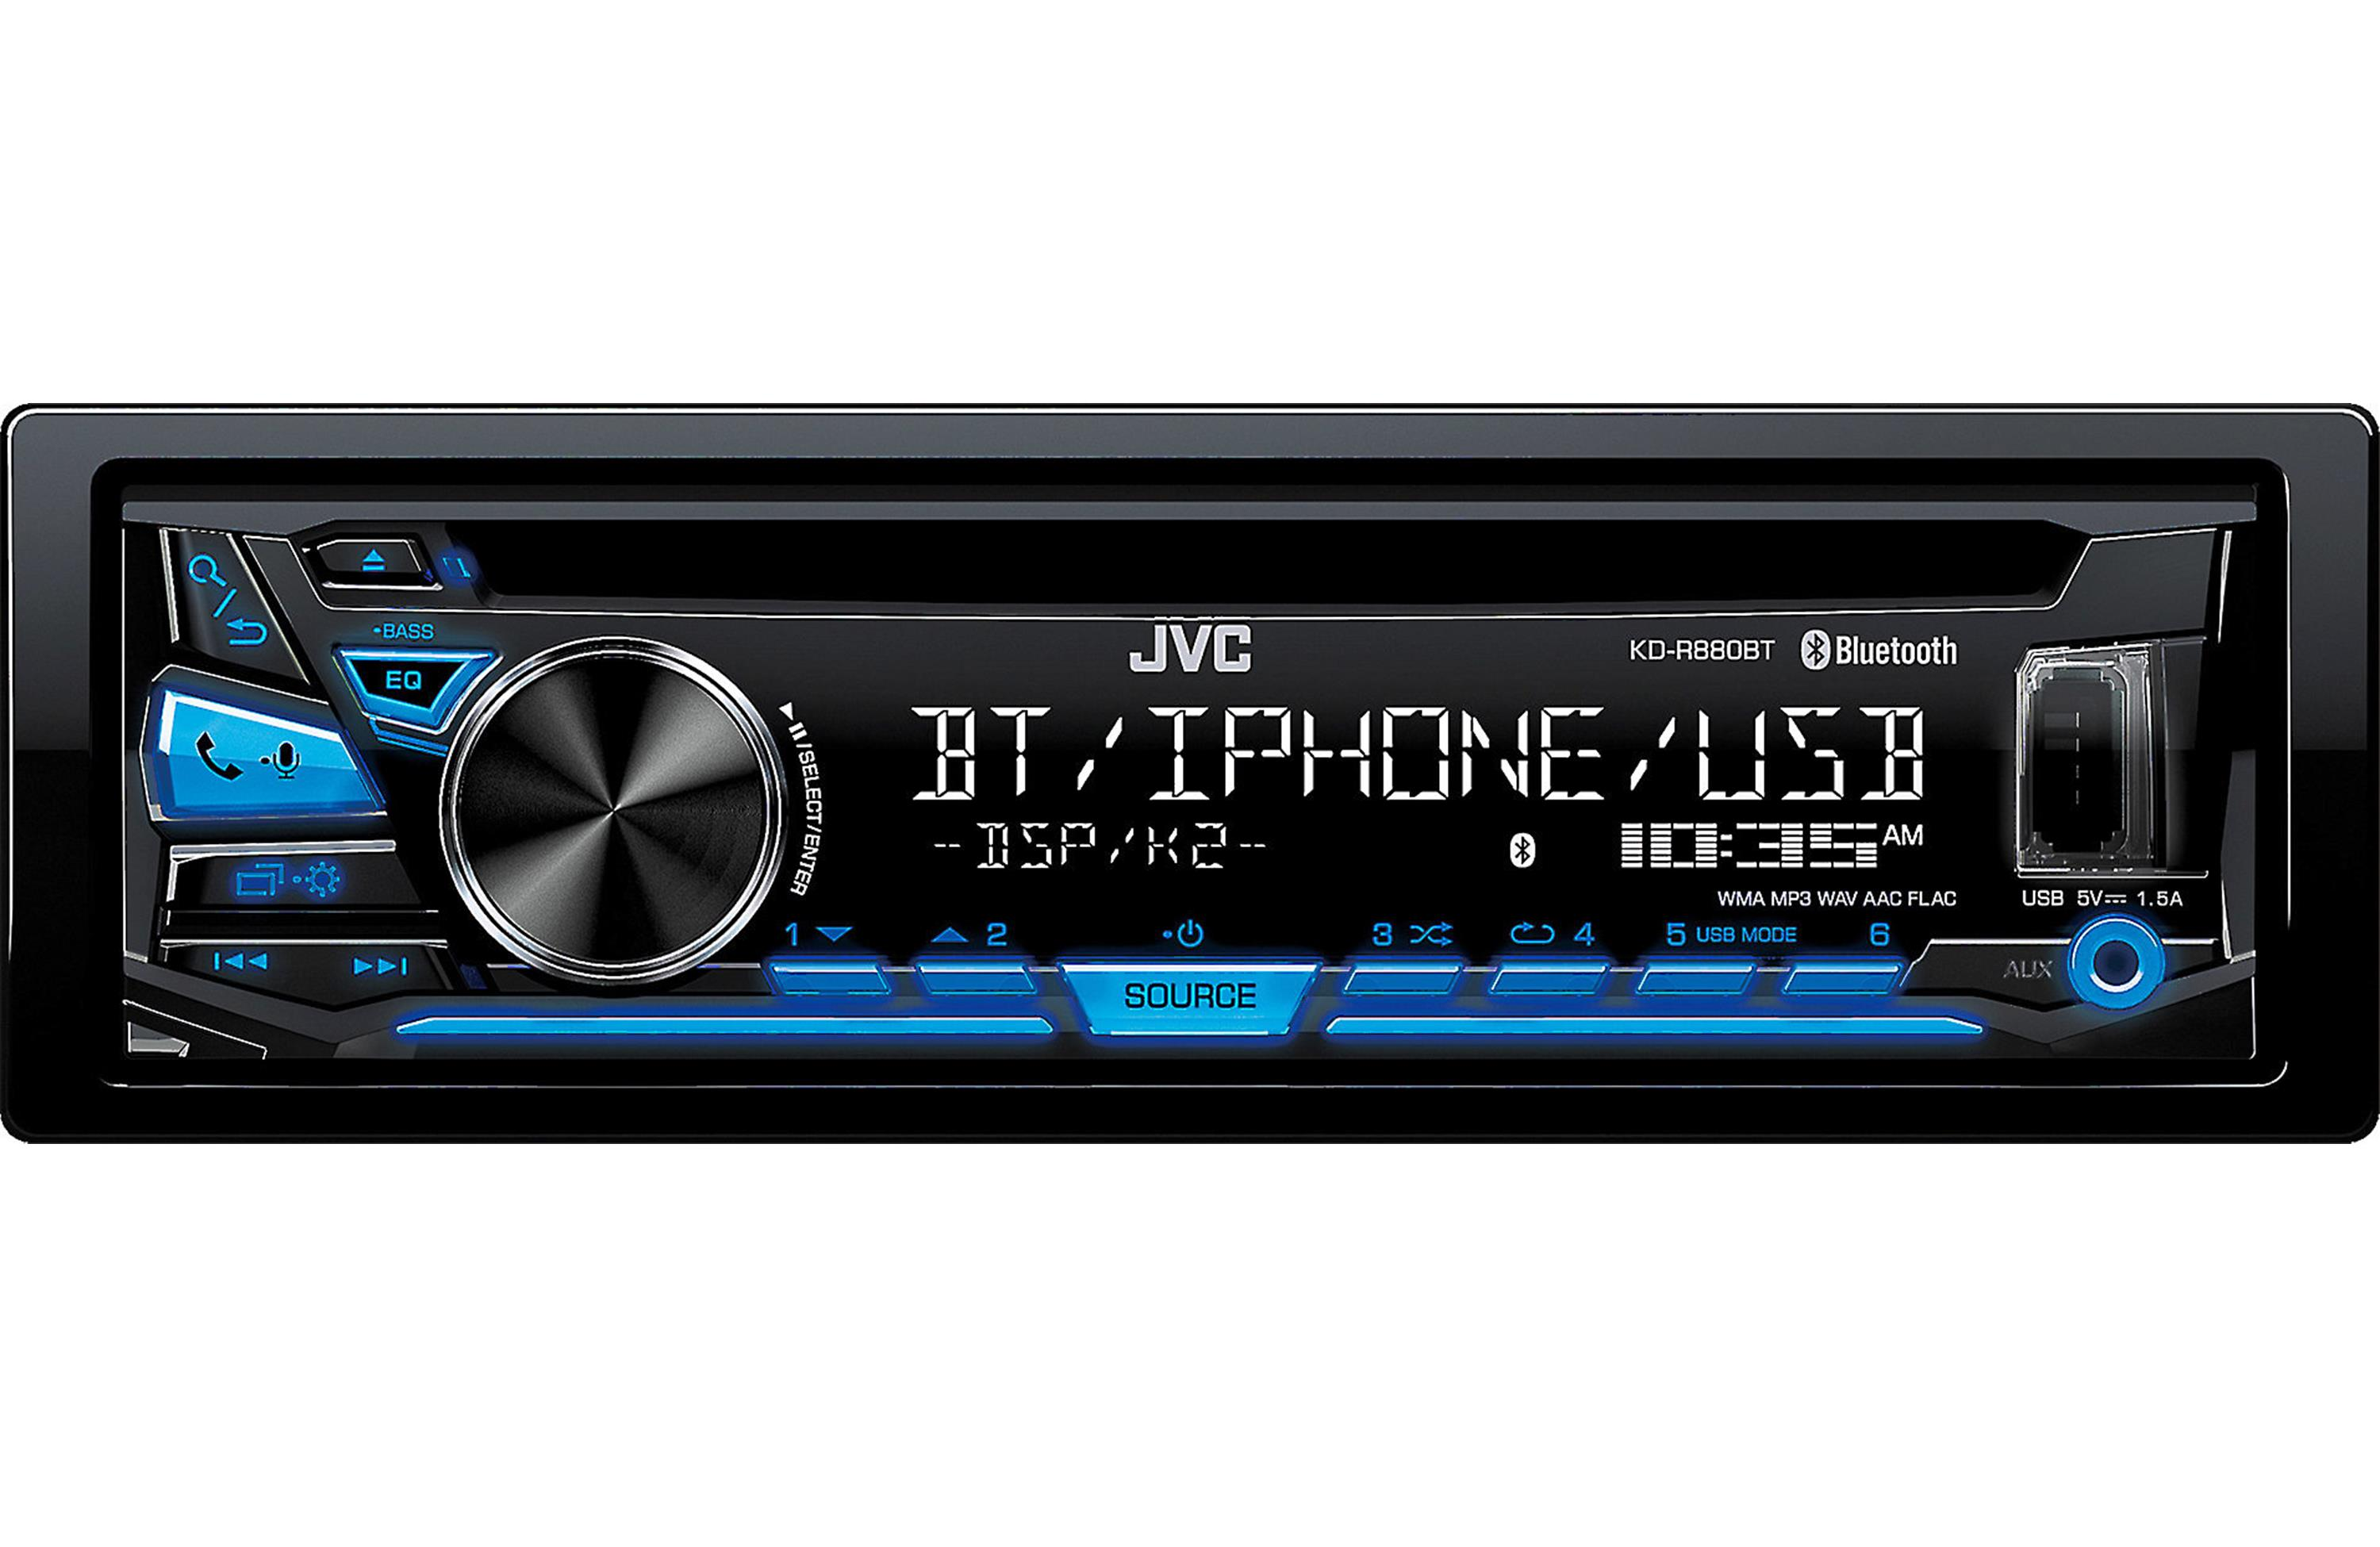 JVC KDSR83BT In-Dash CD- Built-in Bluetooth, USB and Detachable Faceplate on